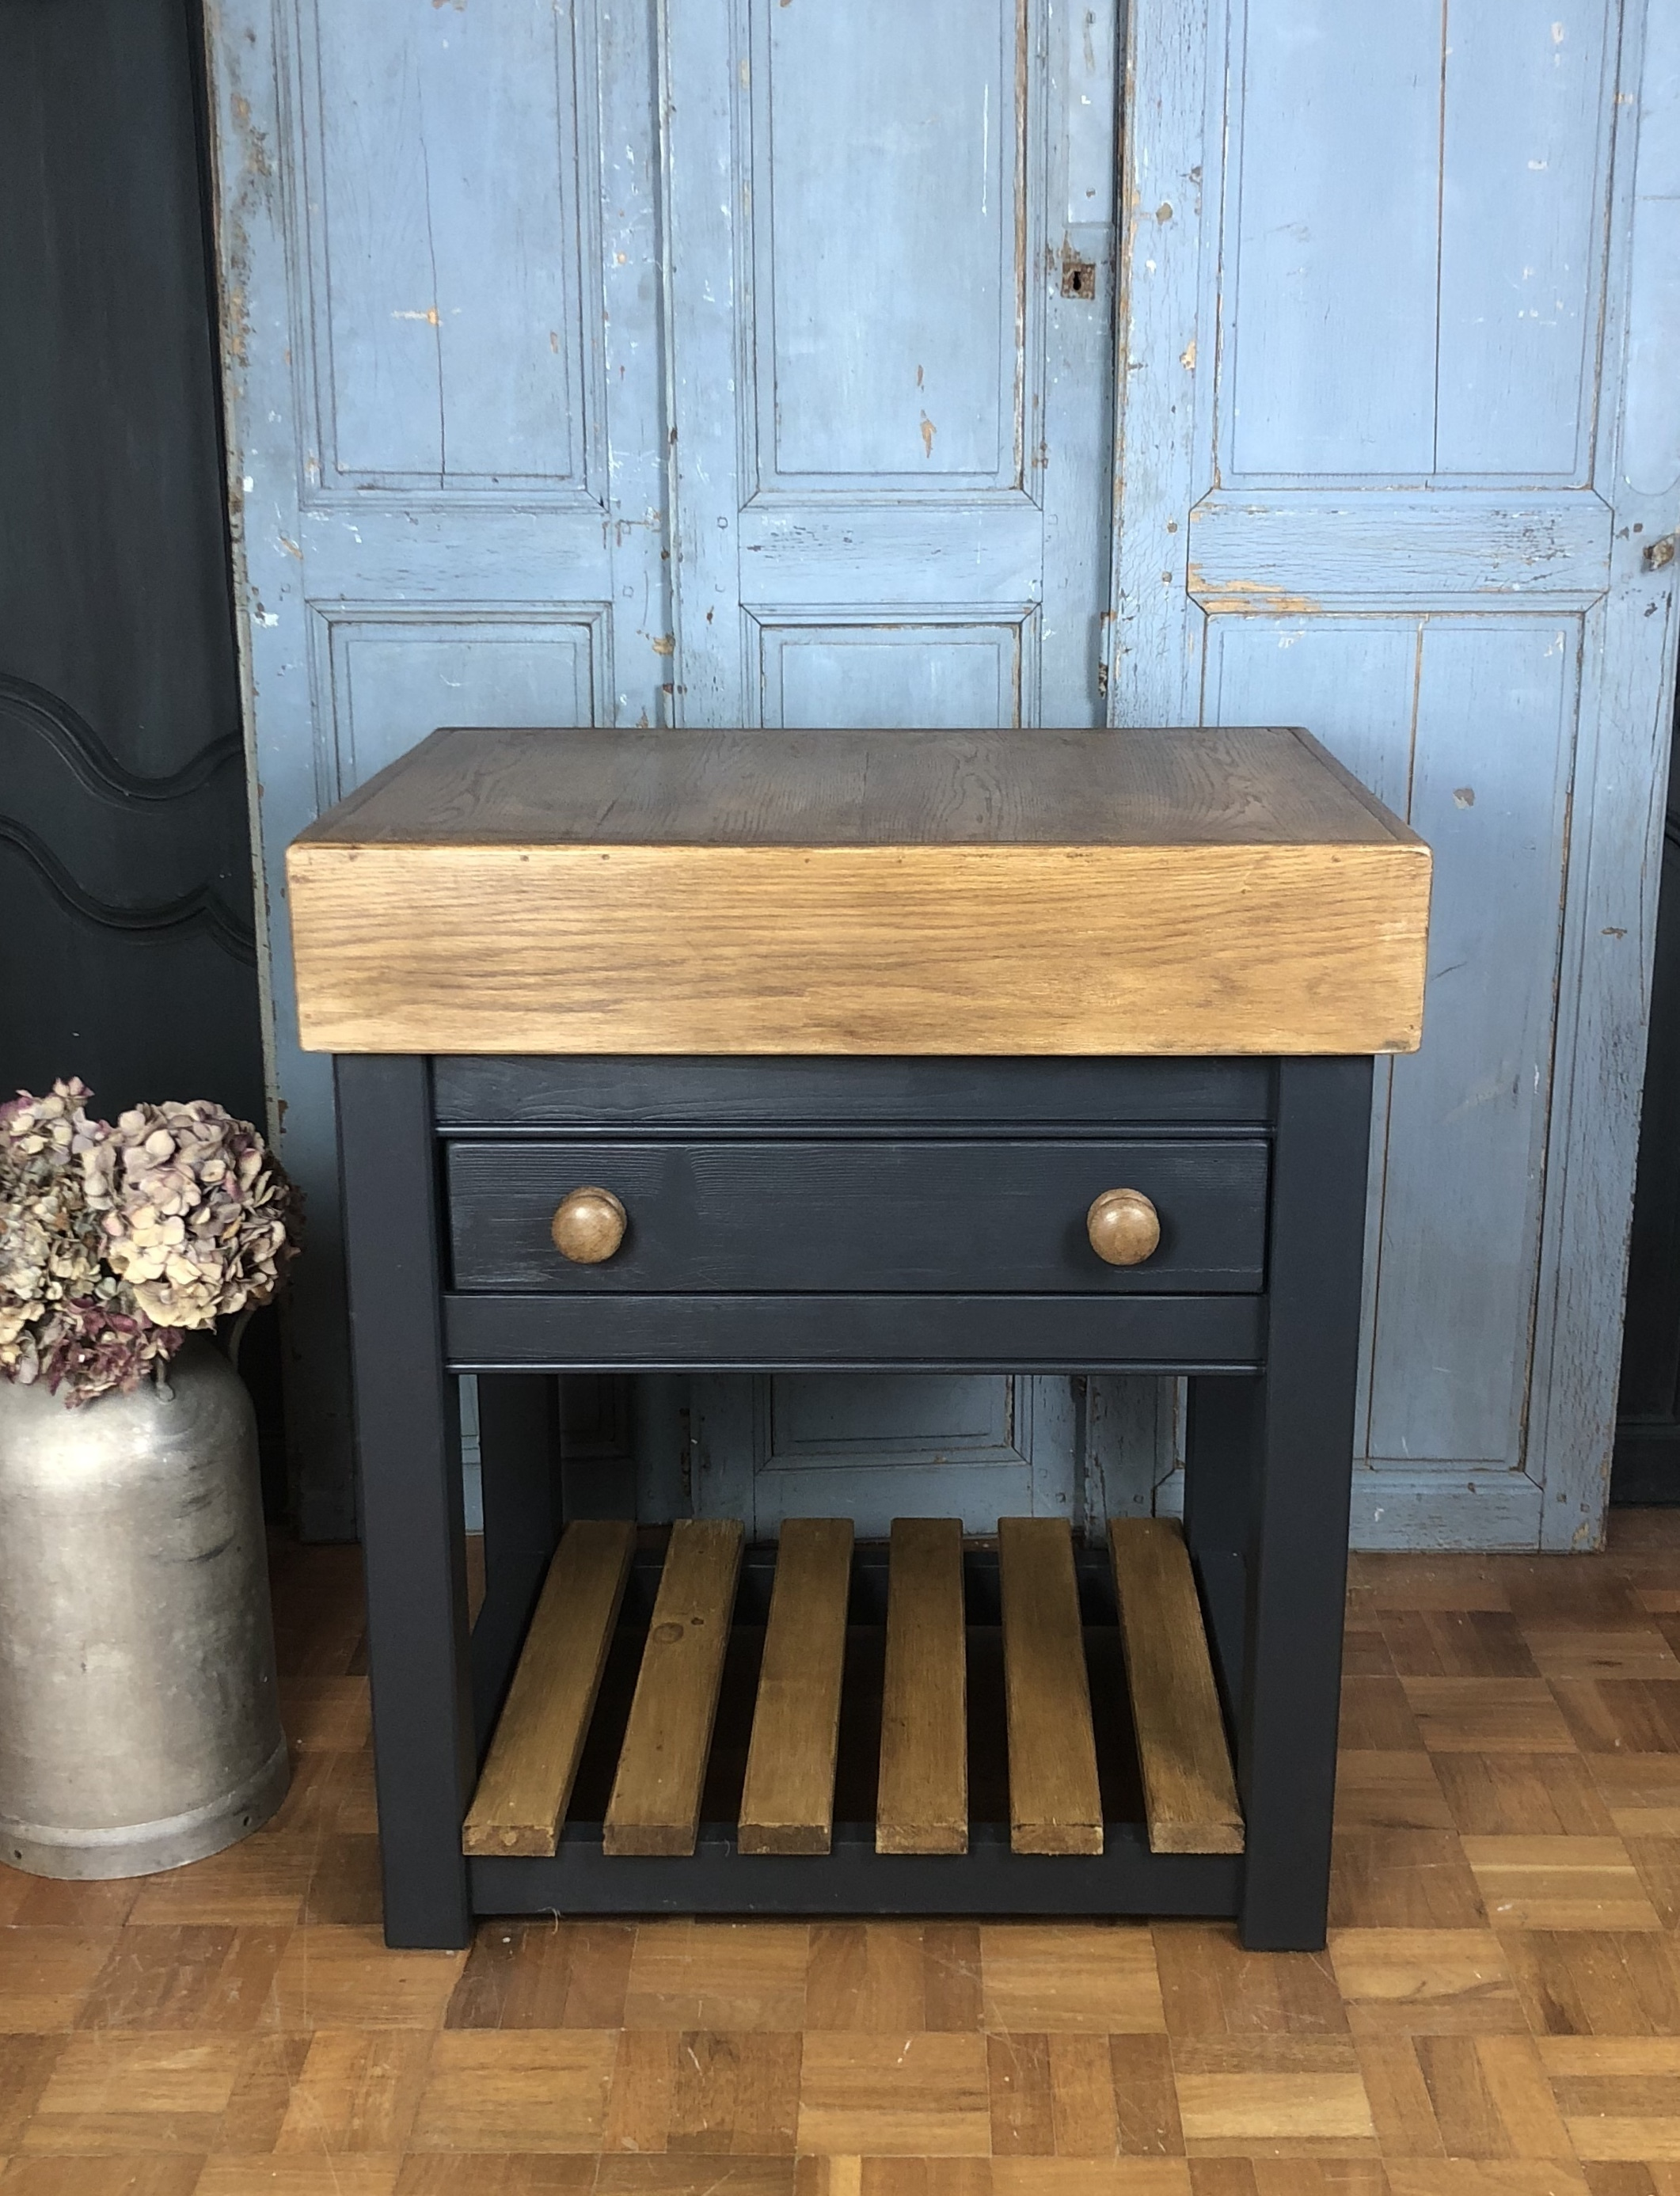 Solid Wooden Butchers Block Made From Old Bank Counters